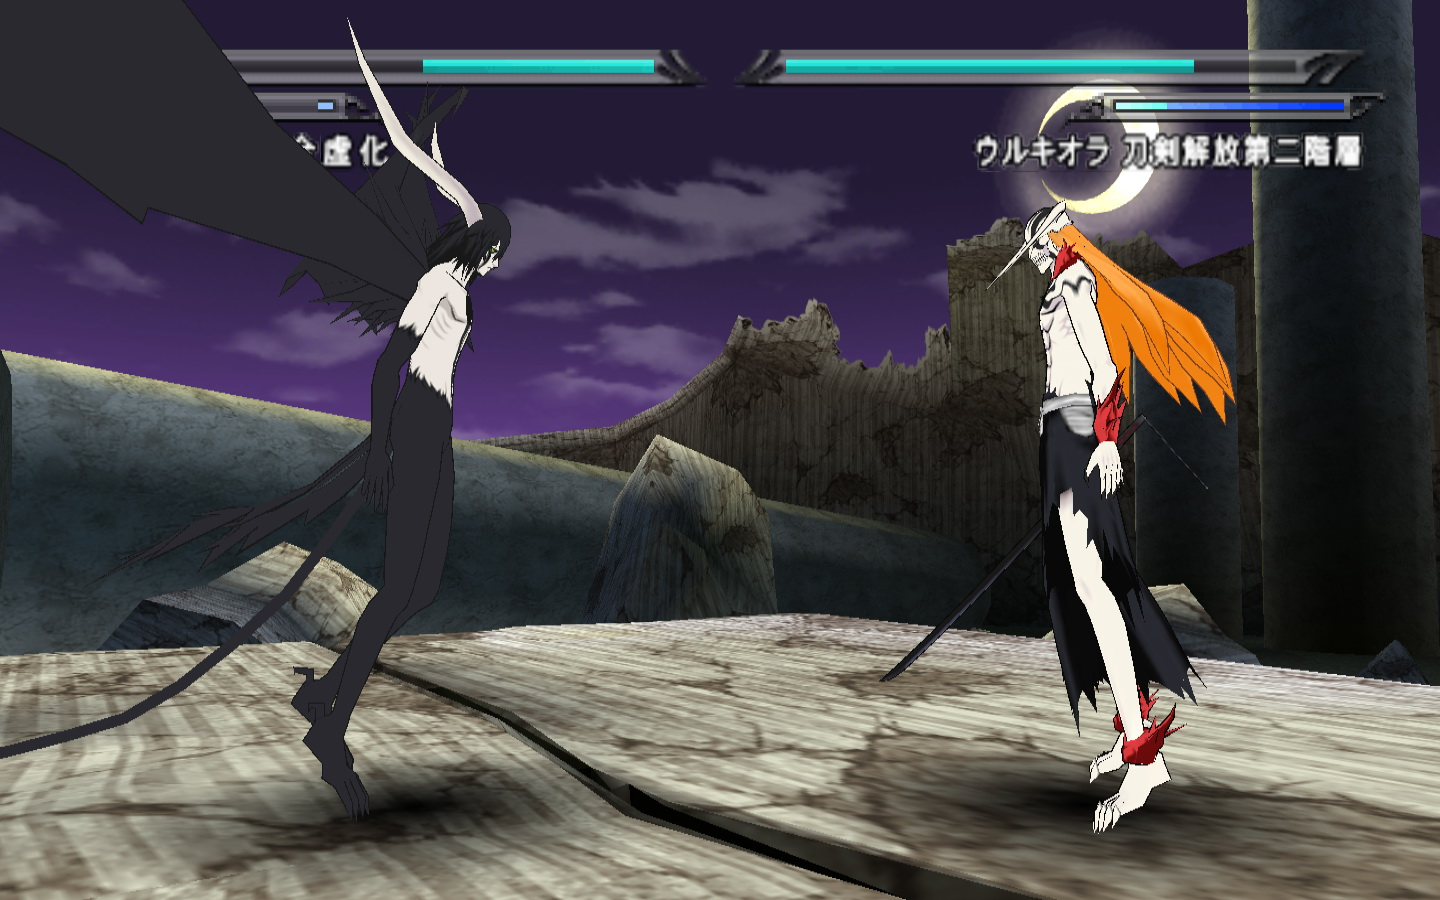 Download bleach: heat the soul 7 iso ppsspp for android mbah android.